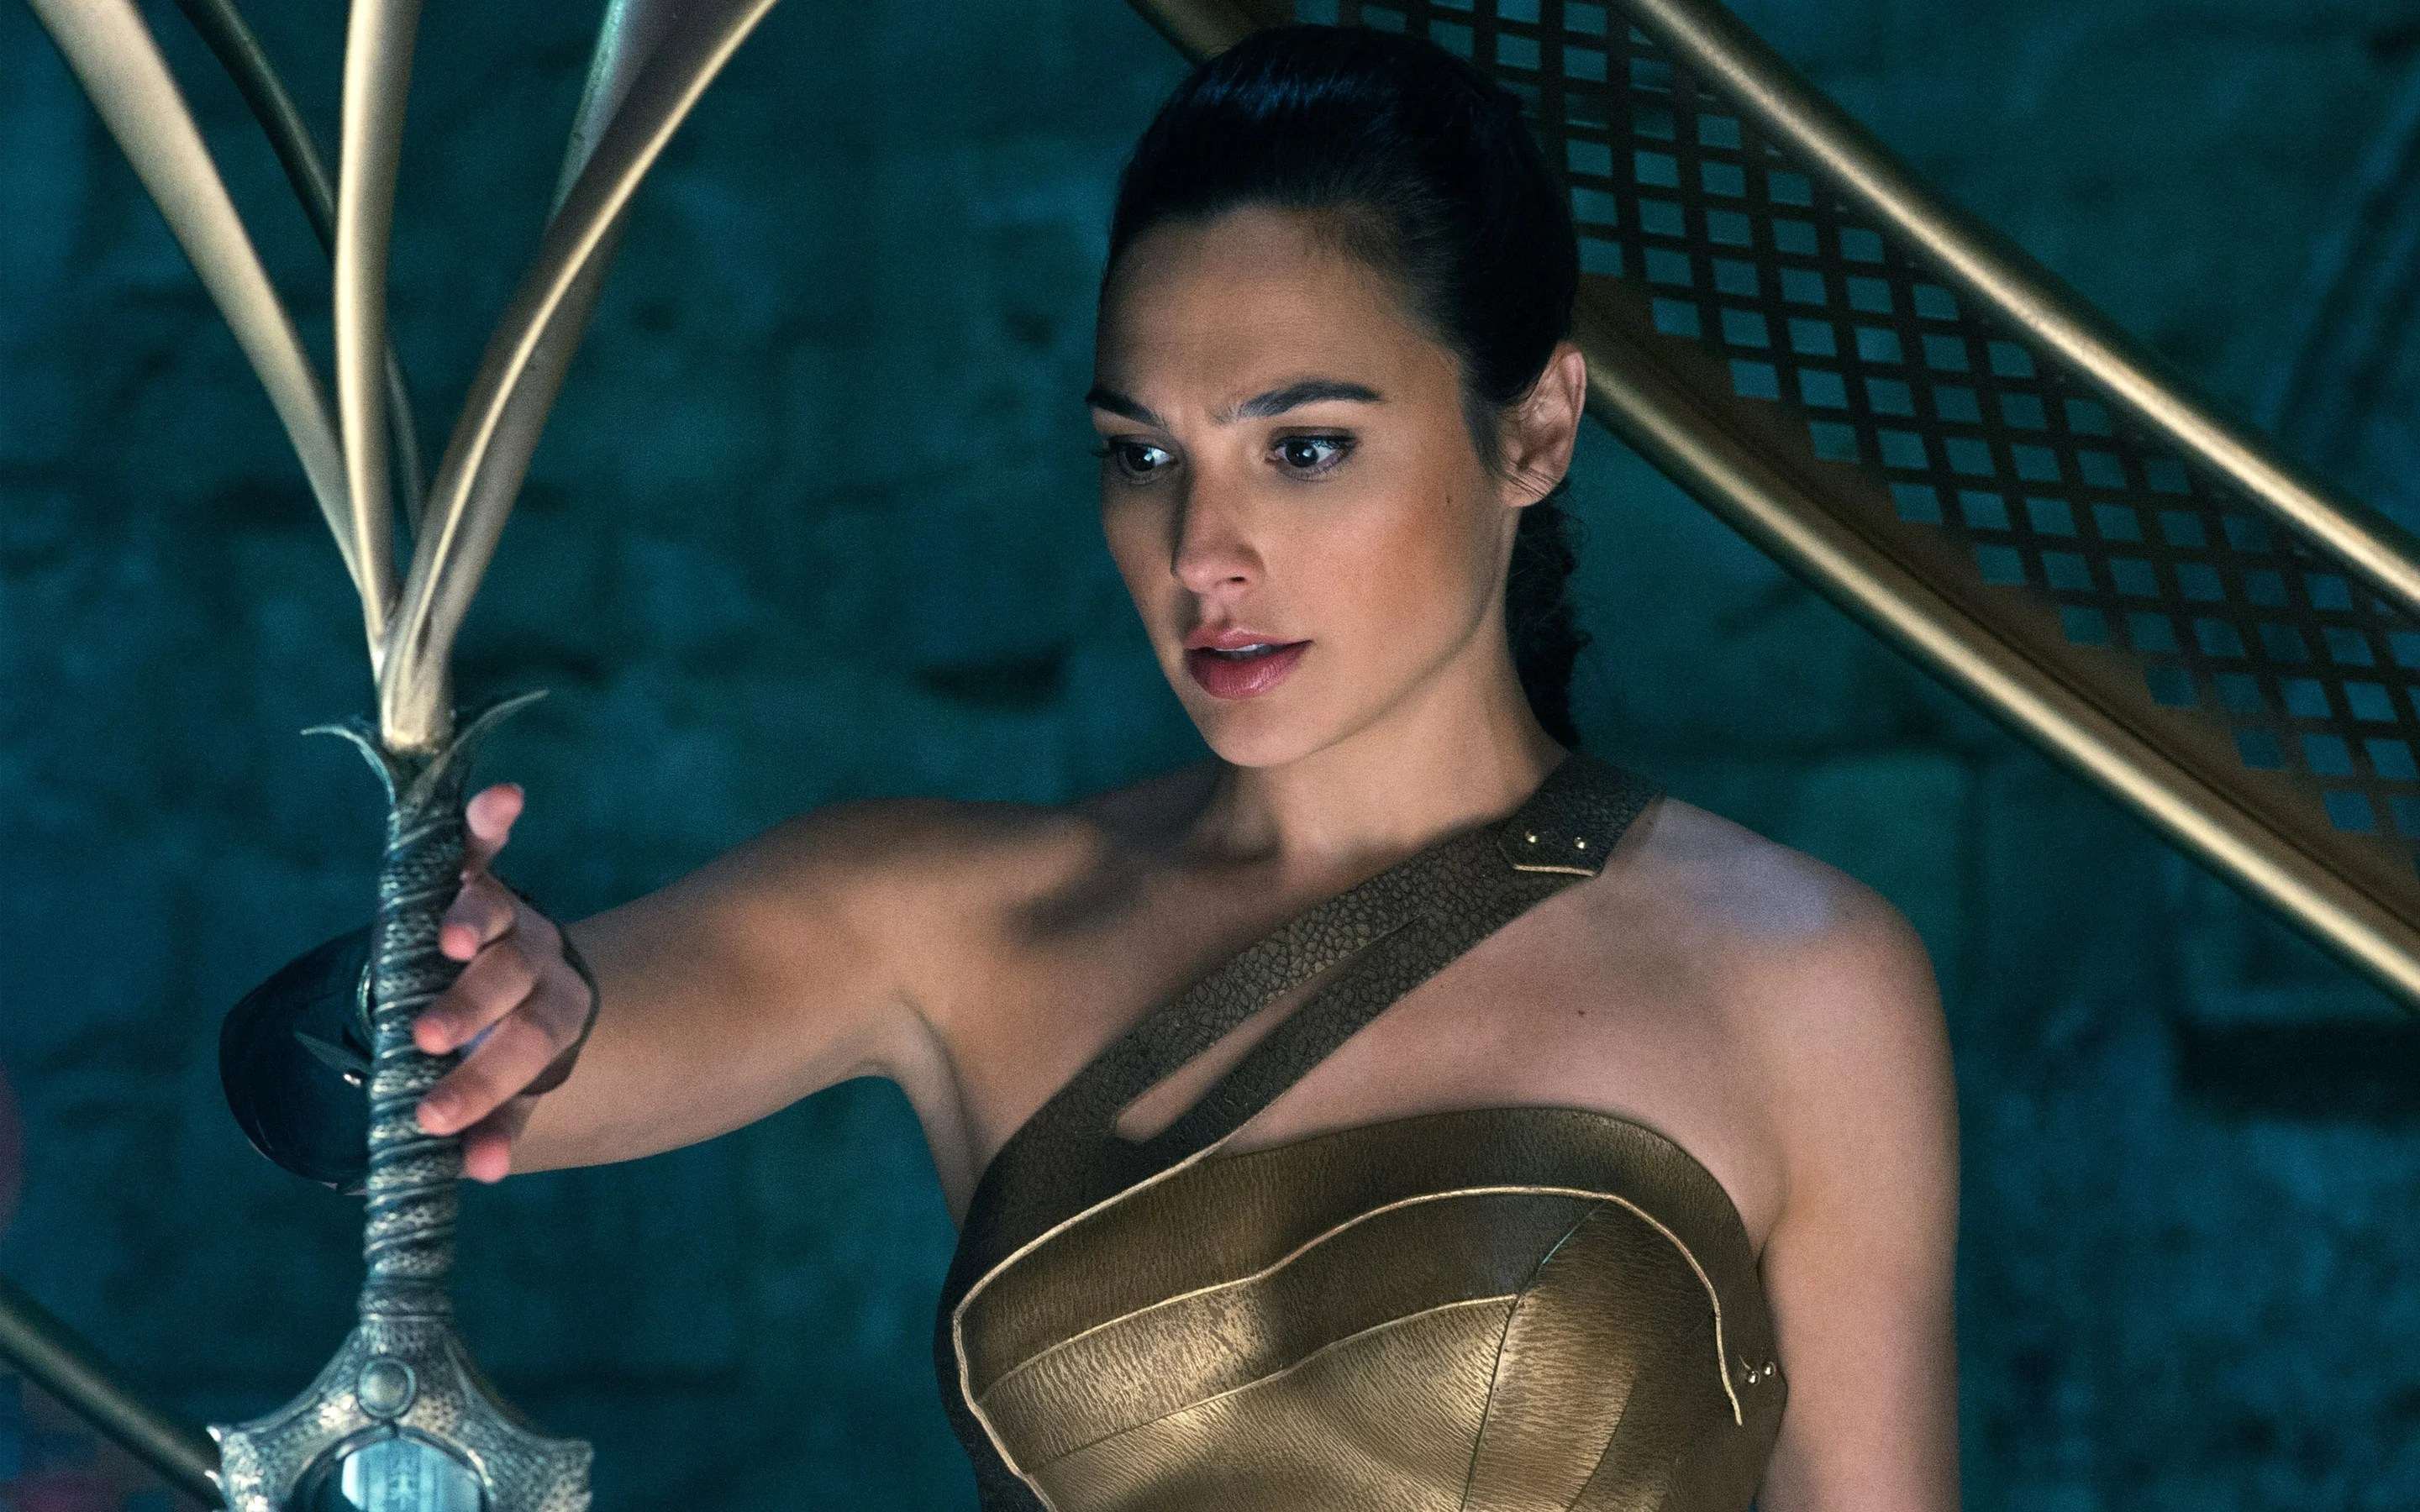 Wonder Woman Review - The Origin Story You Were Waiting For